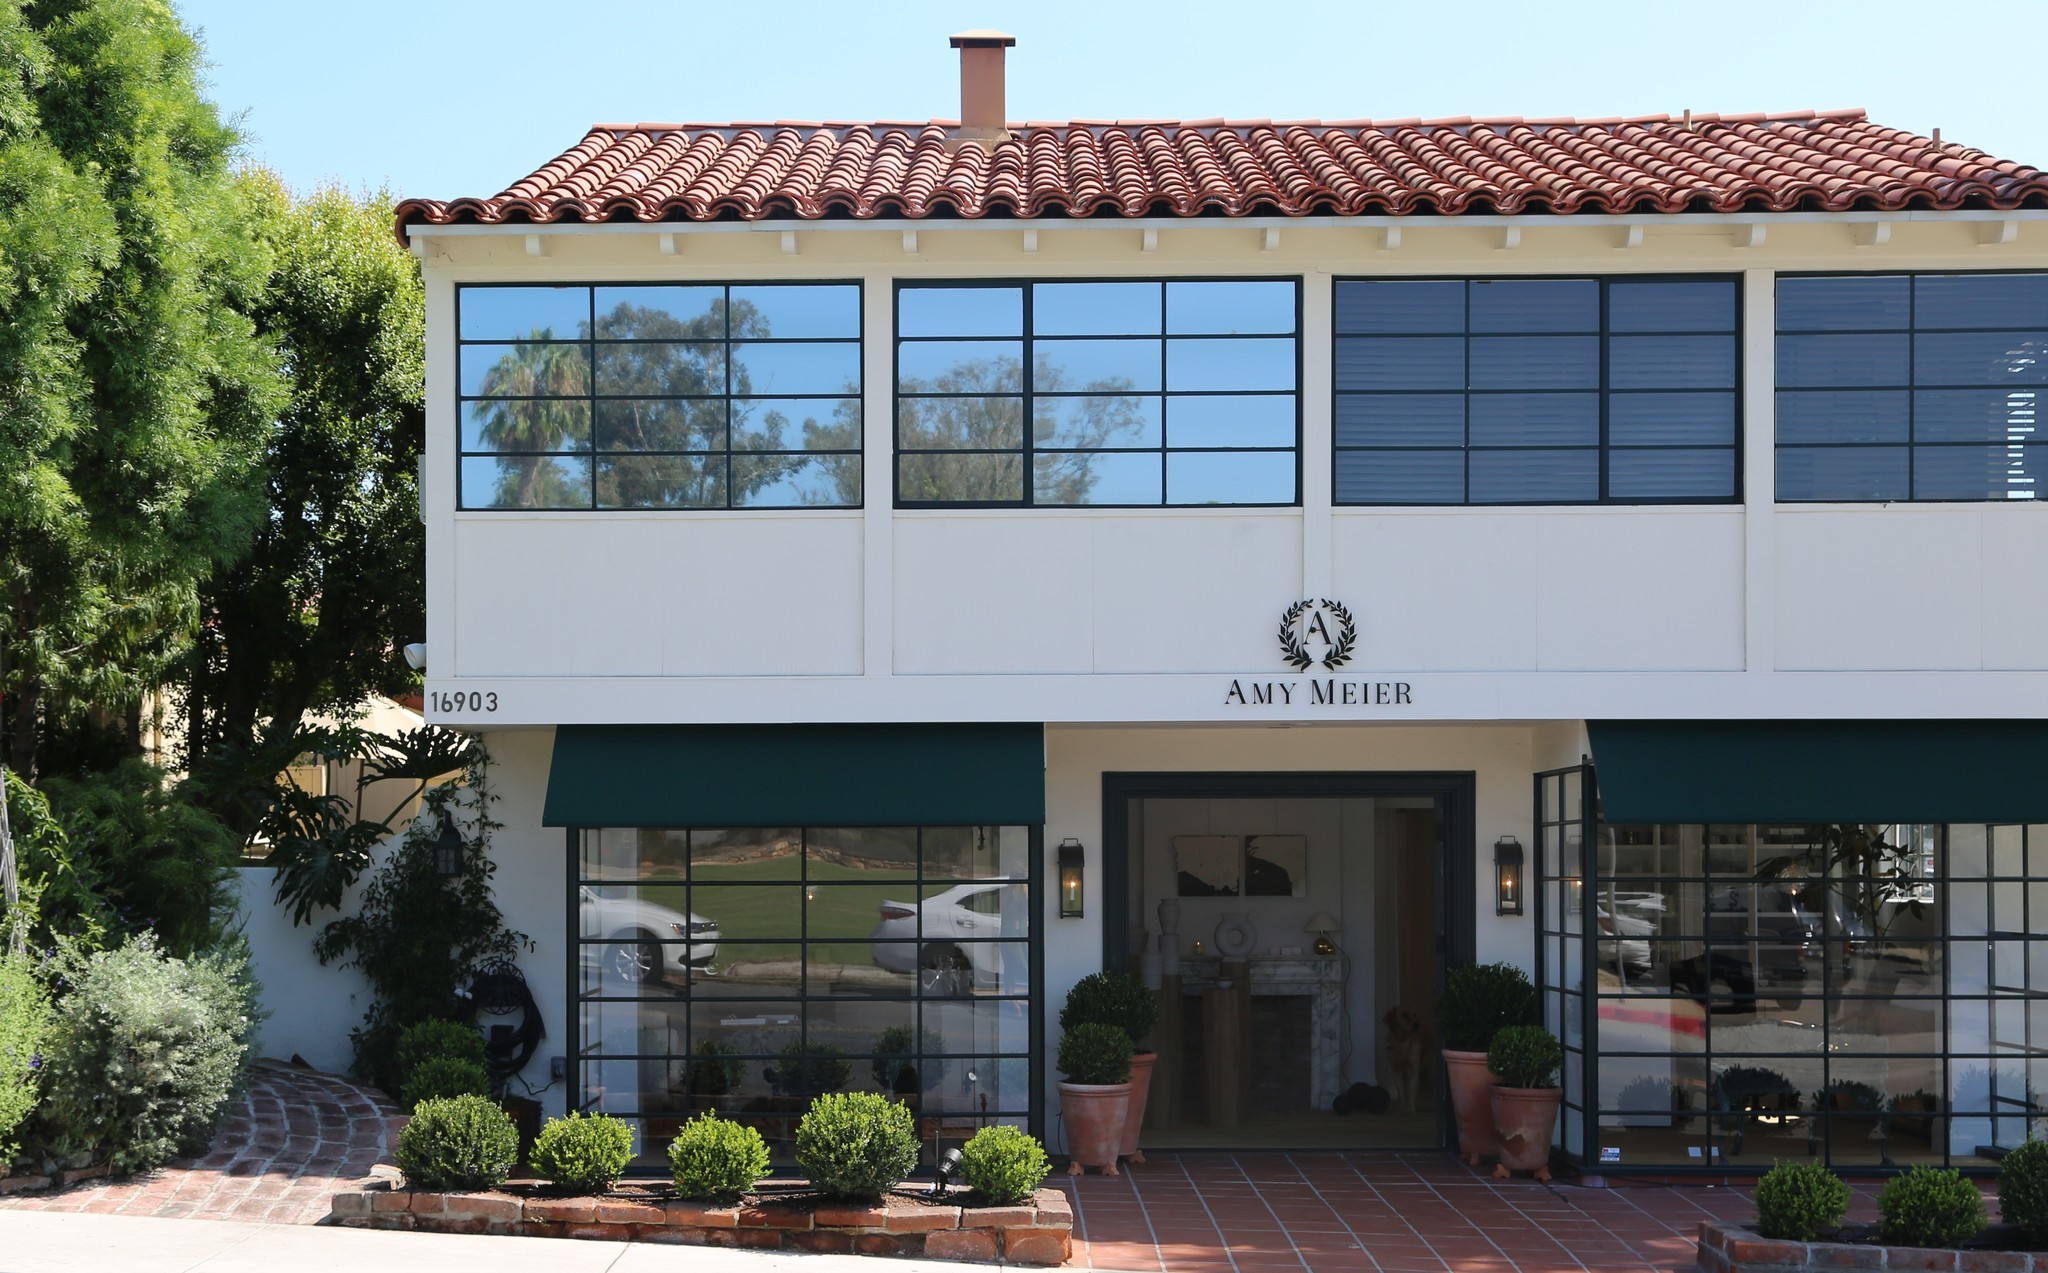 The new retail shop in Rancho San